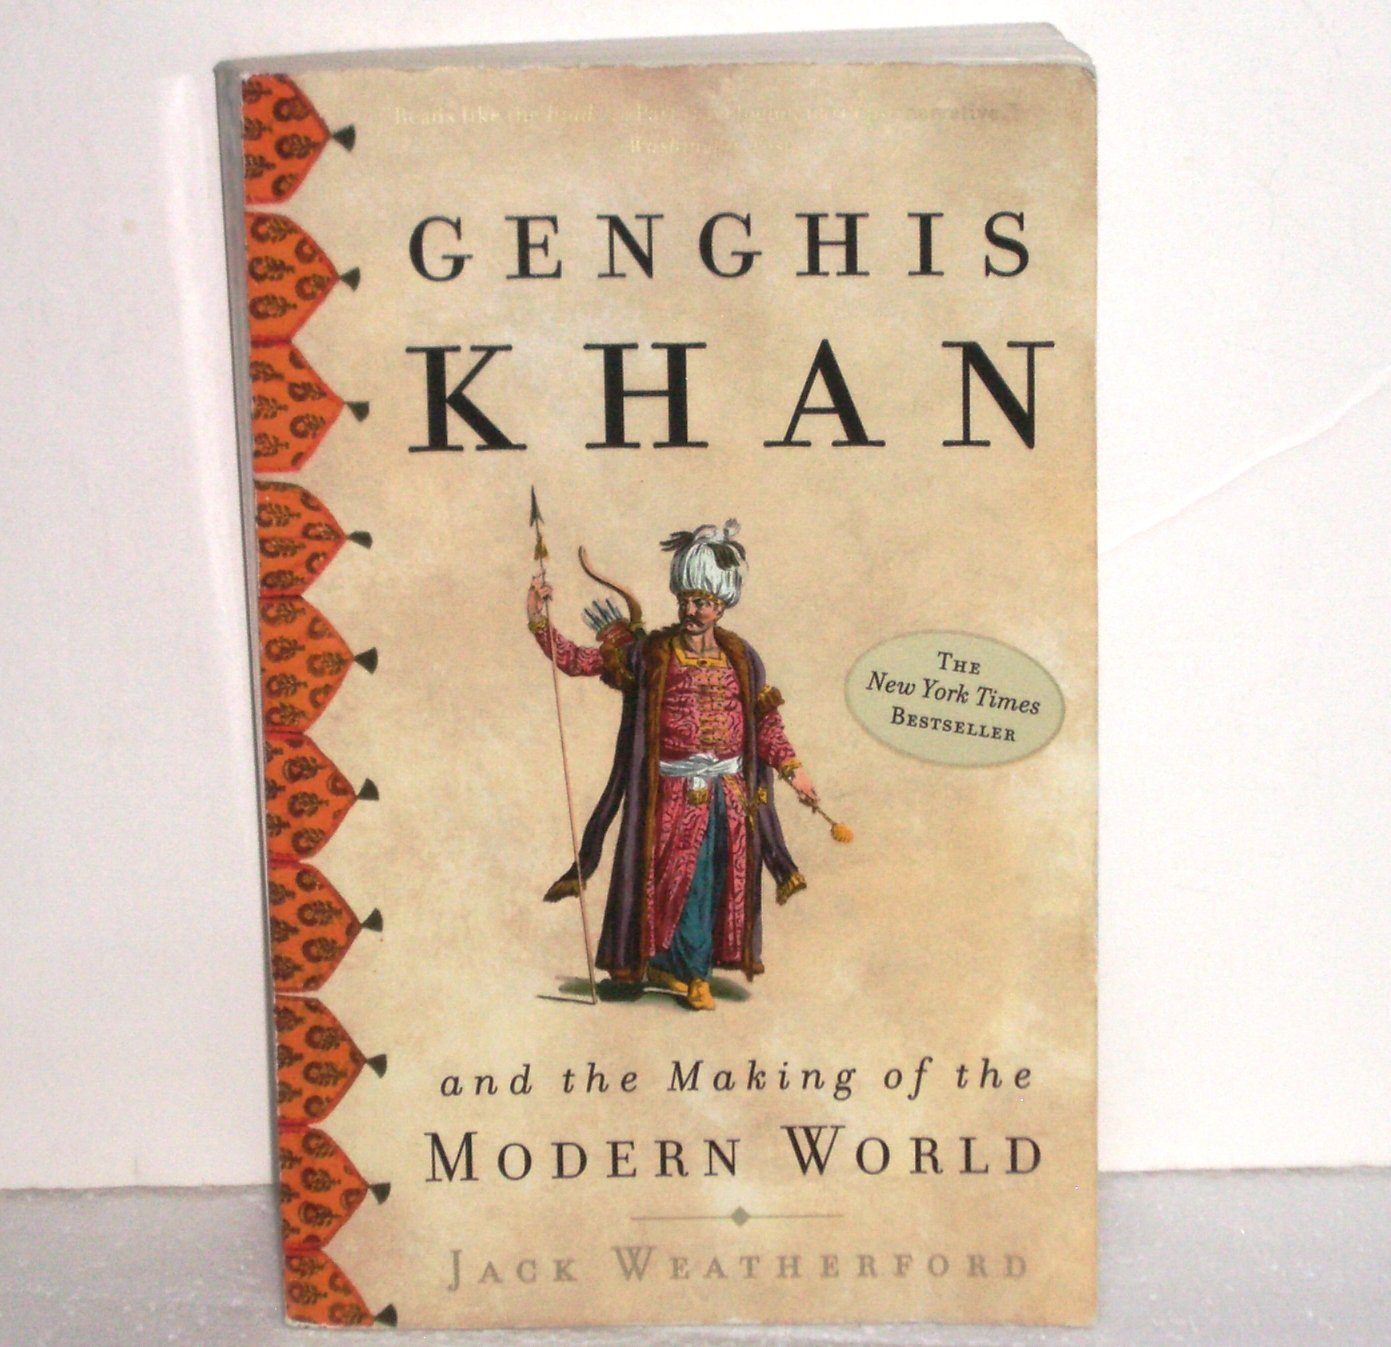 Genghis Khan and the Making of the Modern World by Jack Weatherford Trade Paperback